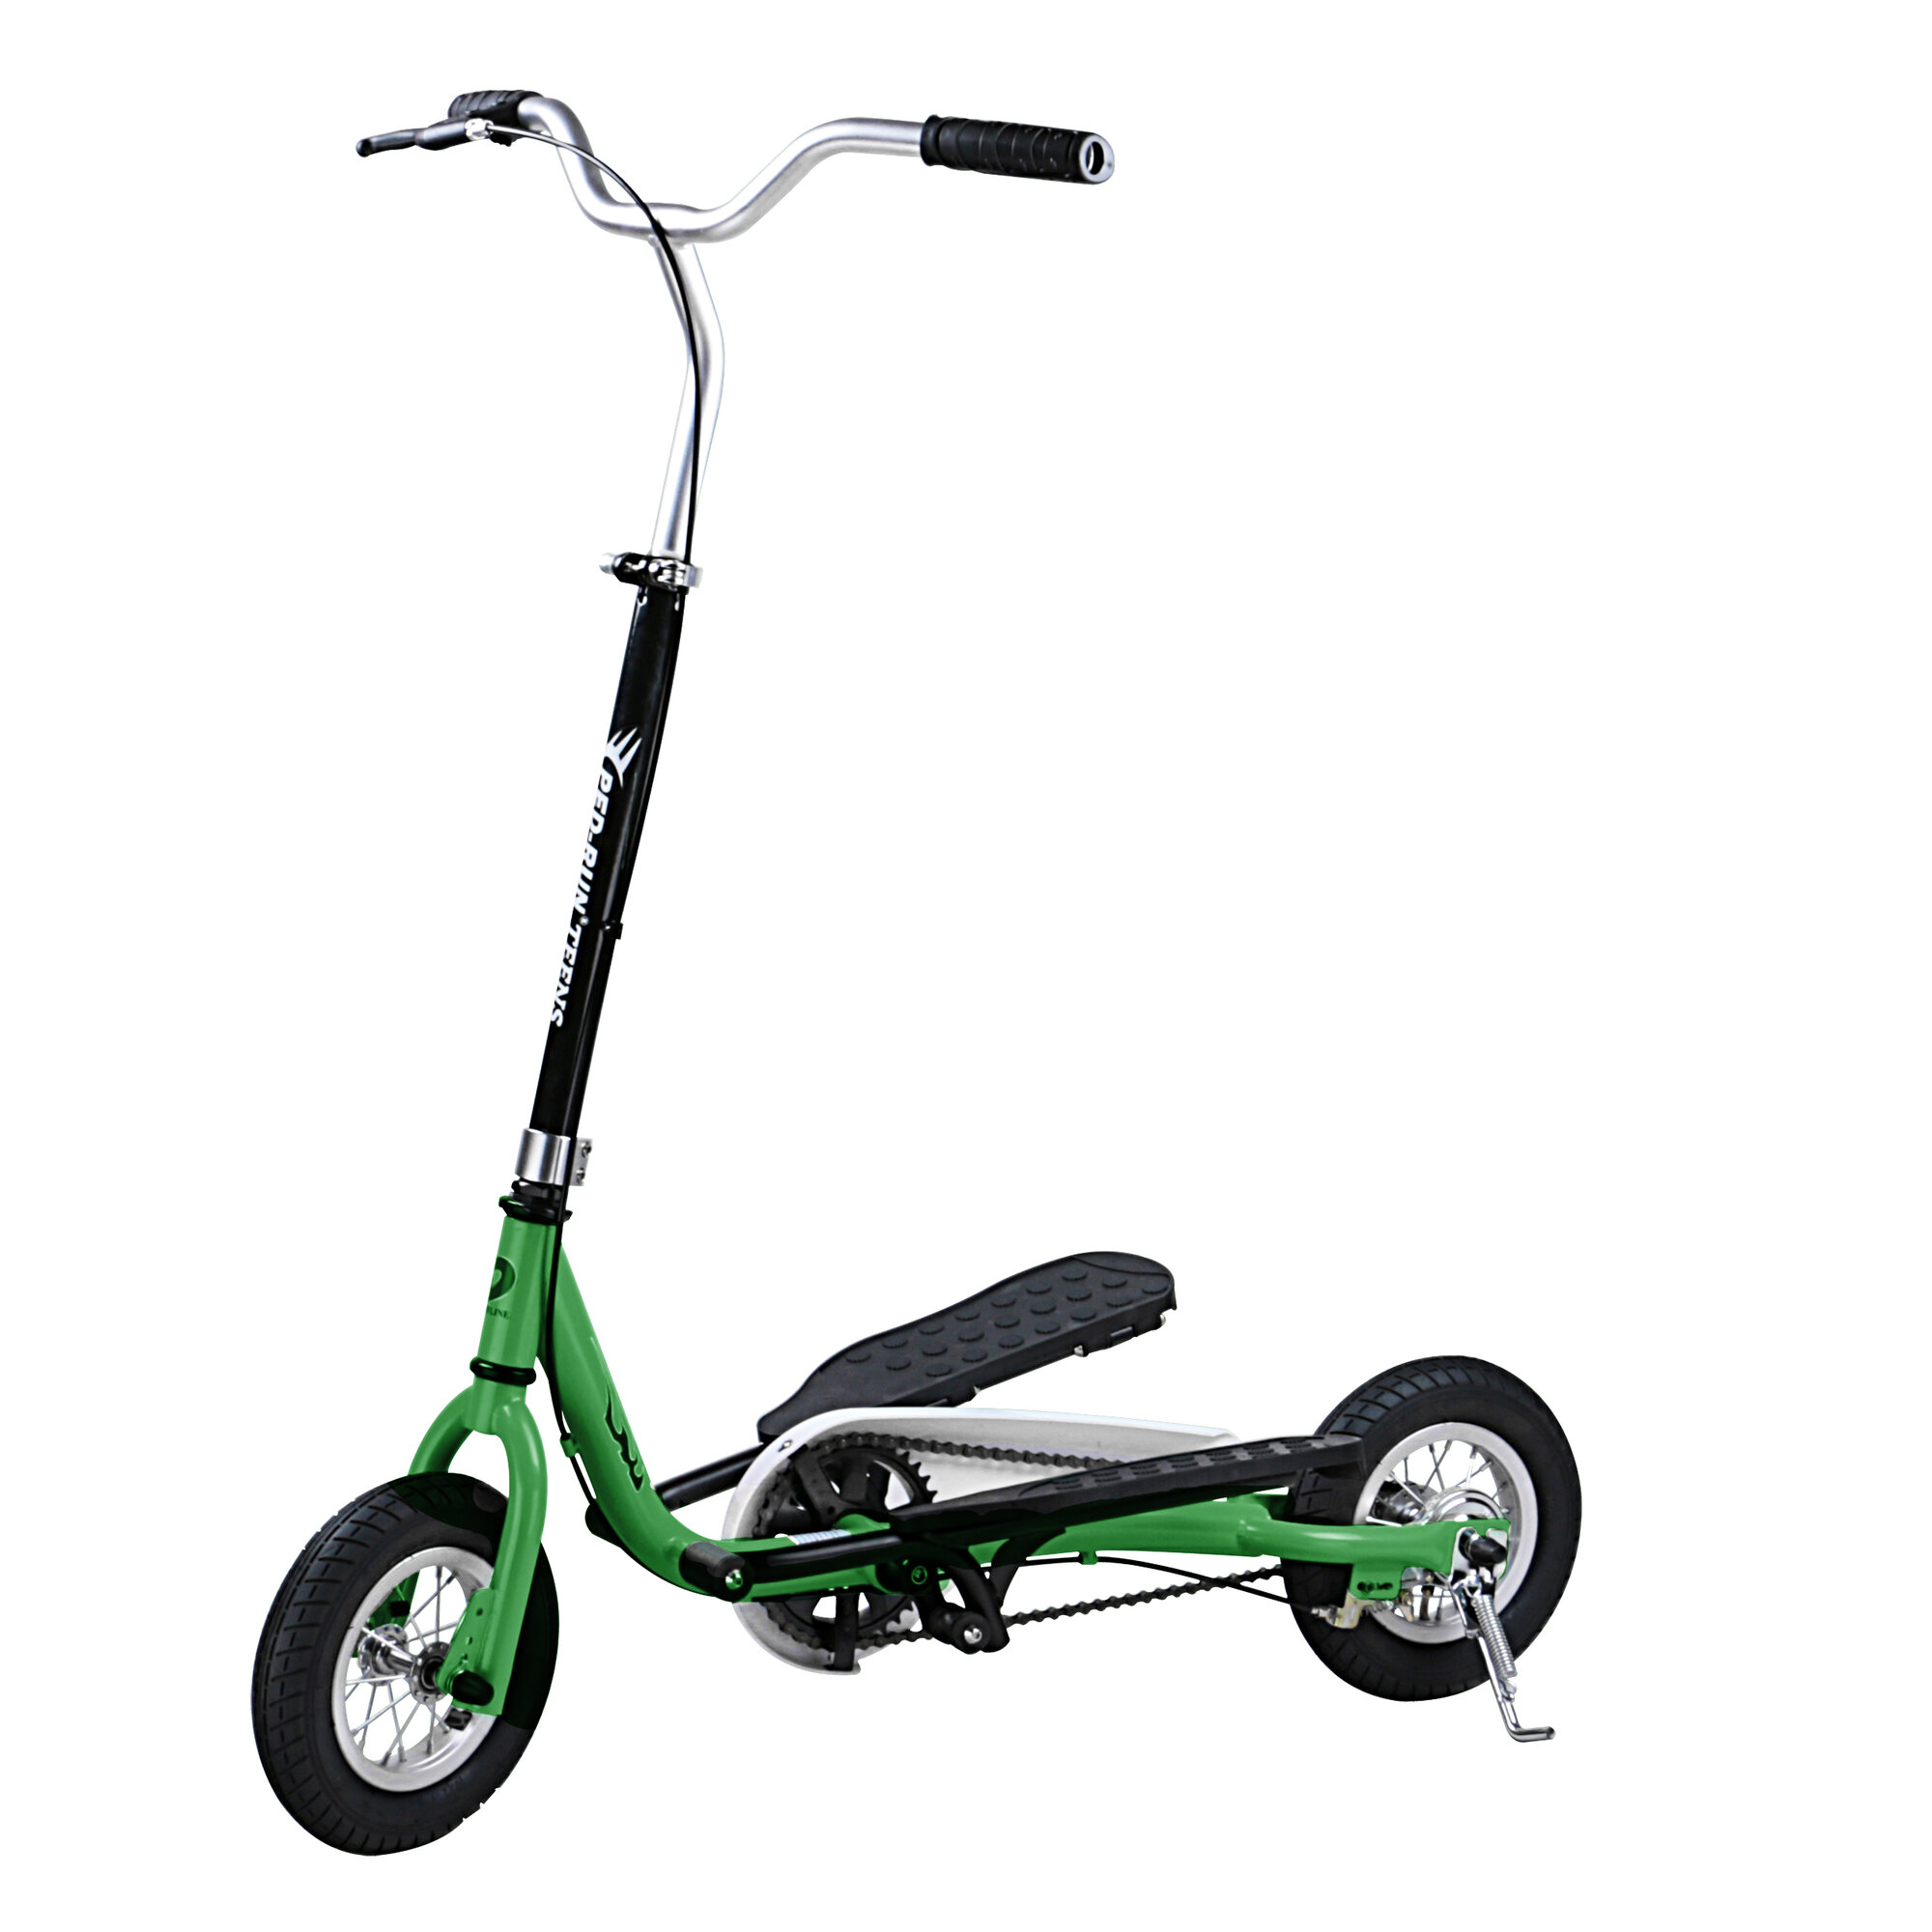 Electric Scooters For Sale 169 kids, teen, and adult